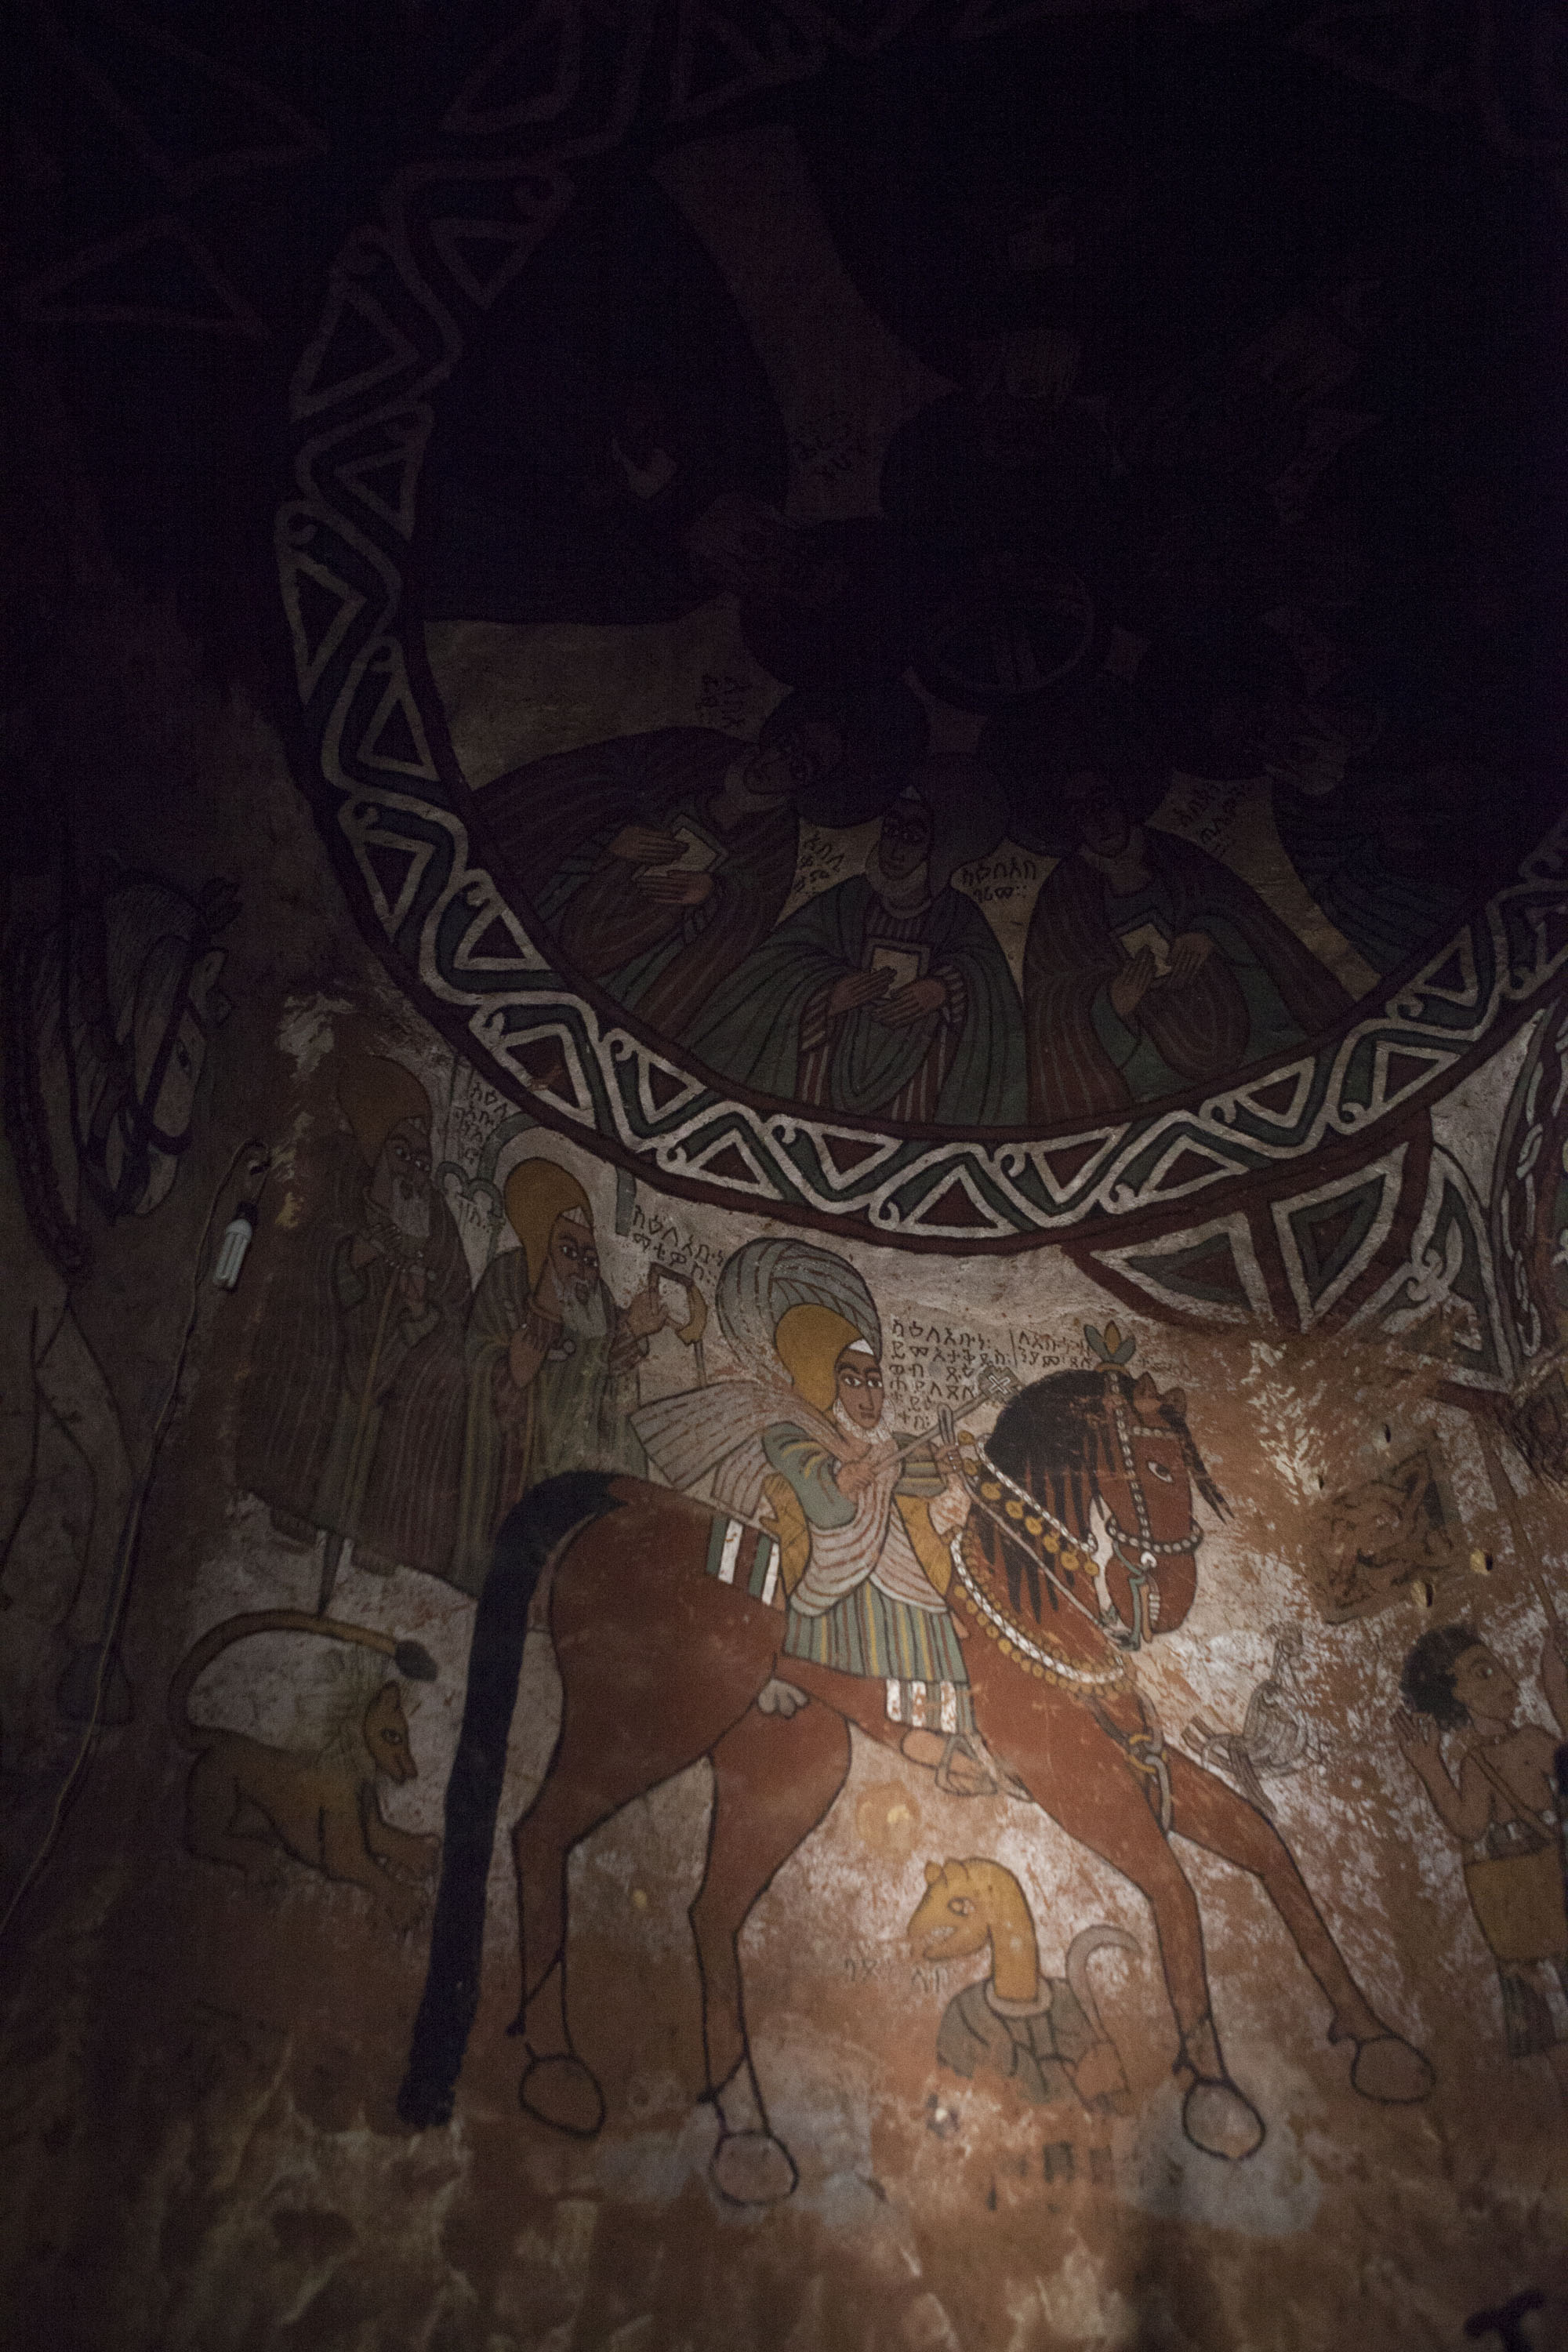 A wall painting inside of Abuna Yemata Church, which is said to have been built by a Syrian priest in the 5th century. It is said to be the most inaccessible church in the world.